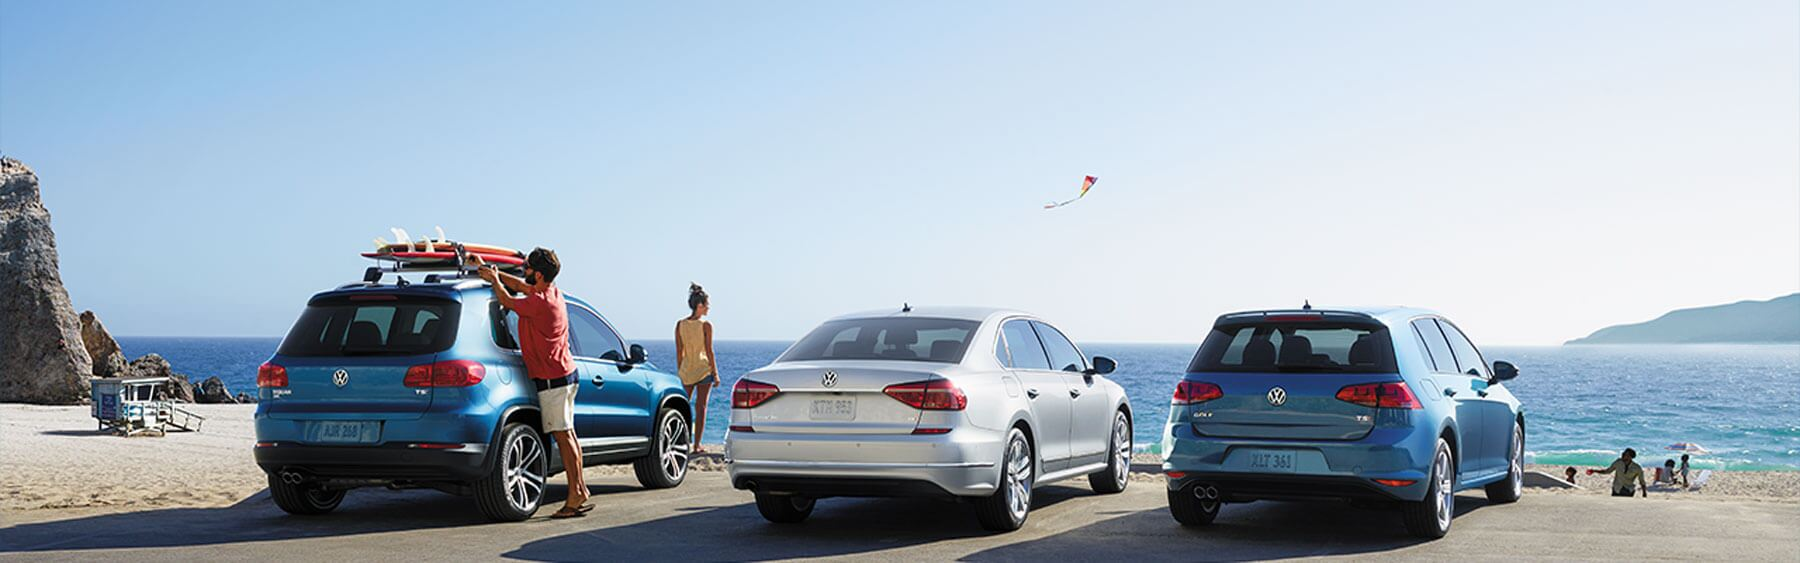 Volkswagen Certified Pre-Owned in Ontario, CA